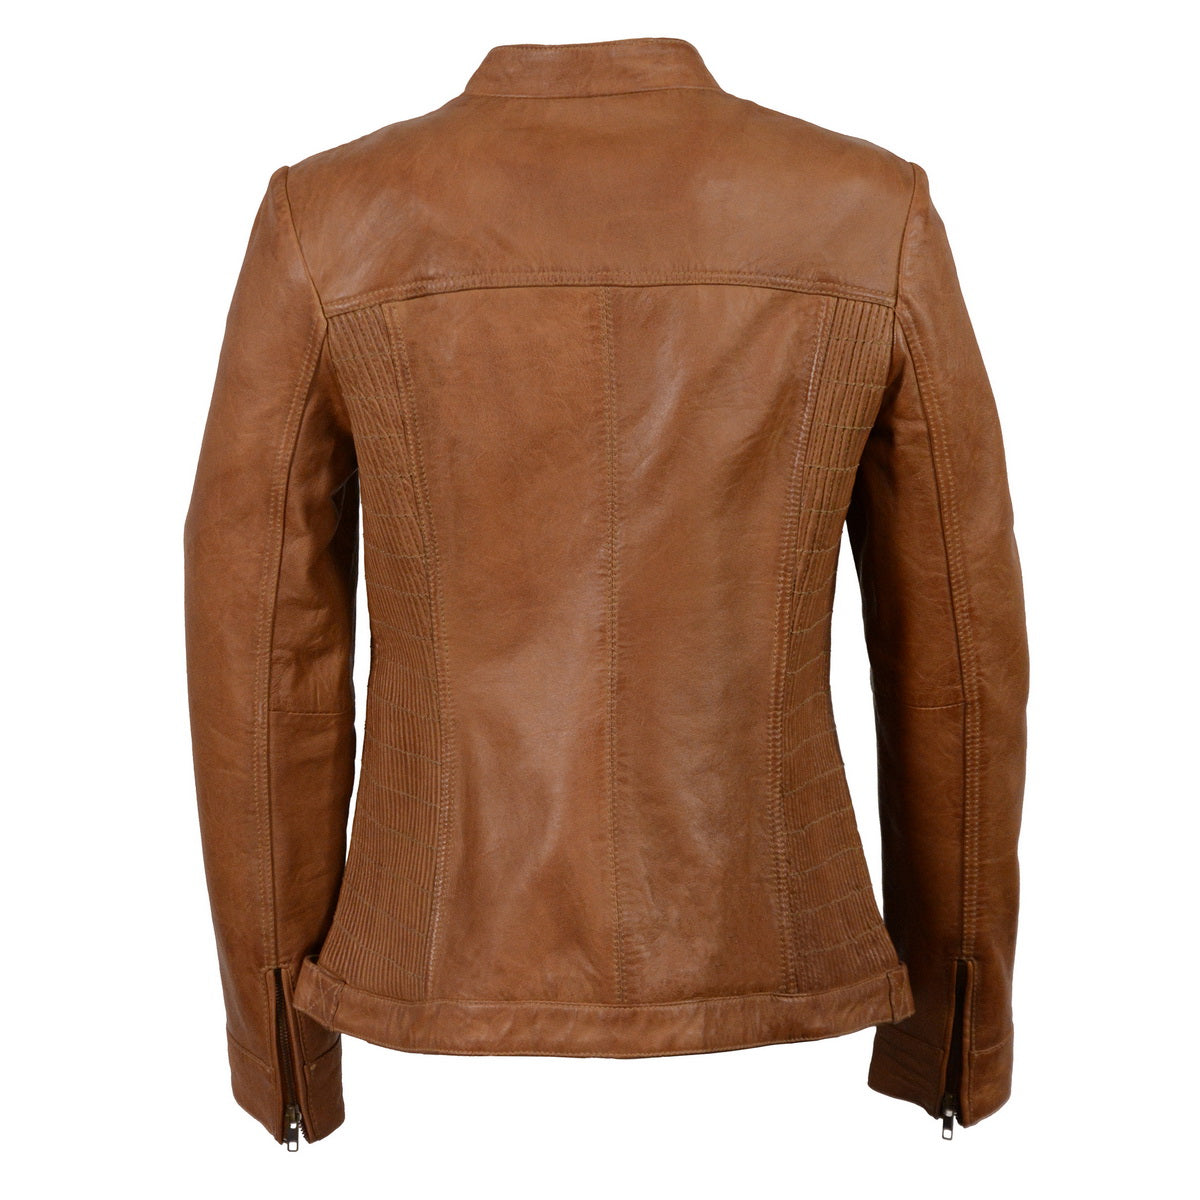 Milwaukee Leather SFL2855 Saddle Women's Zip Front Leather Jacket with